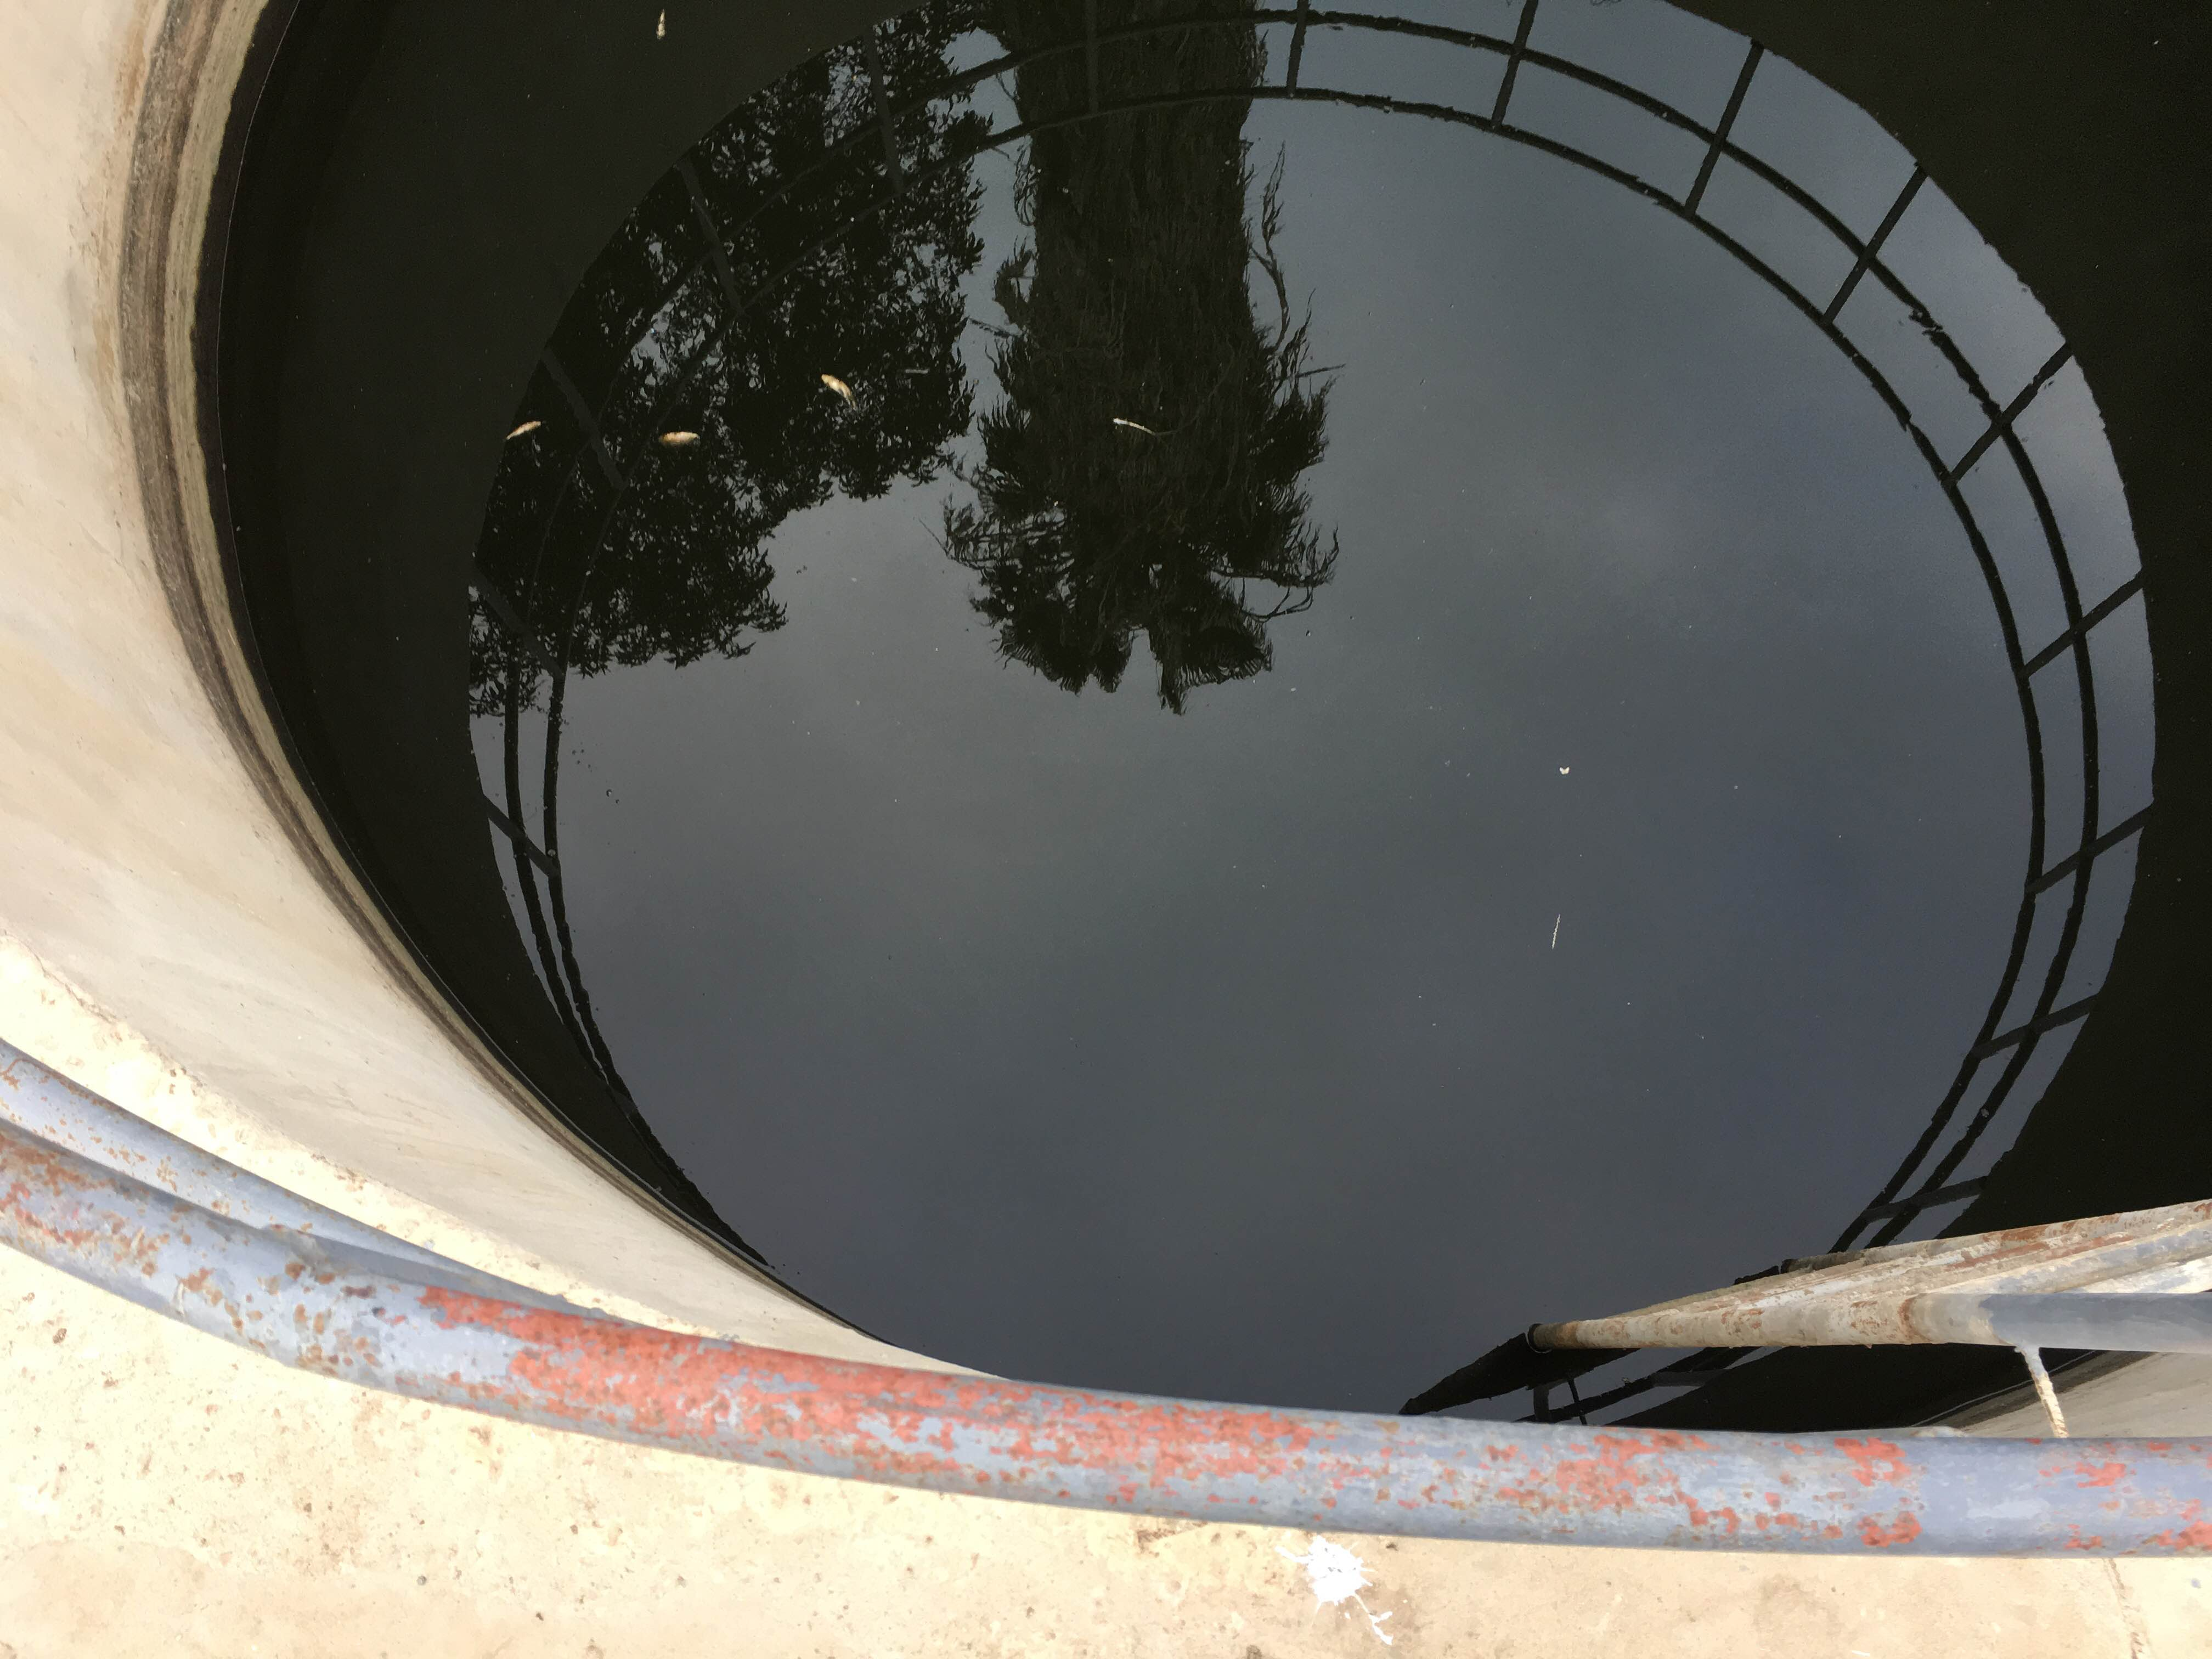 Dead fish in Fuwwah water treatment plant